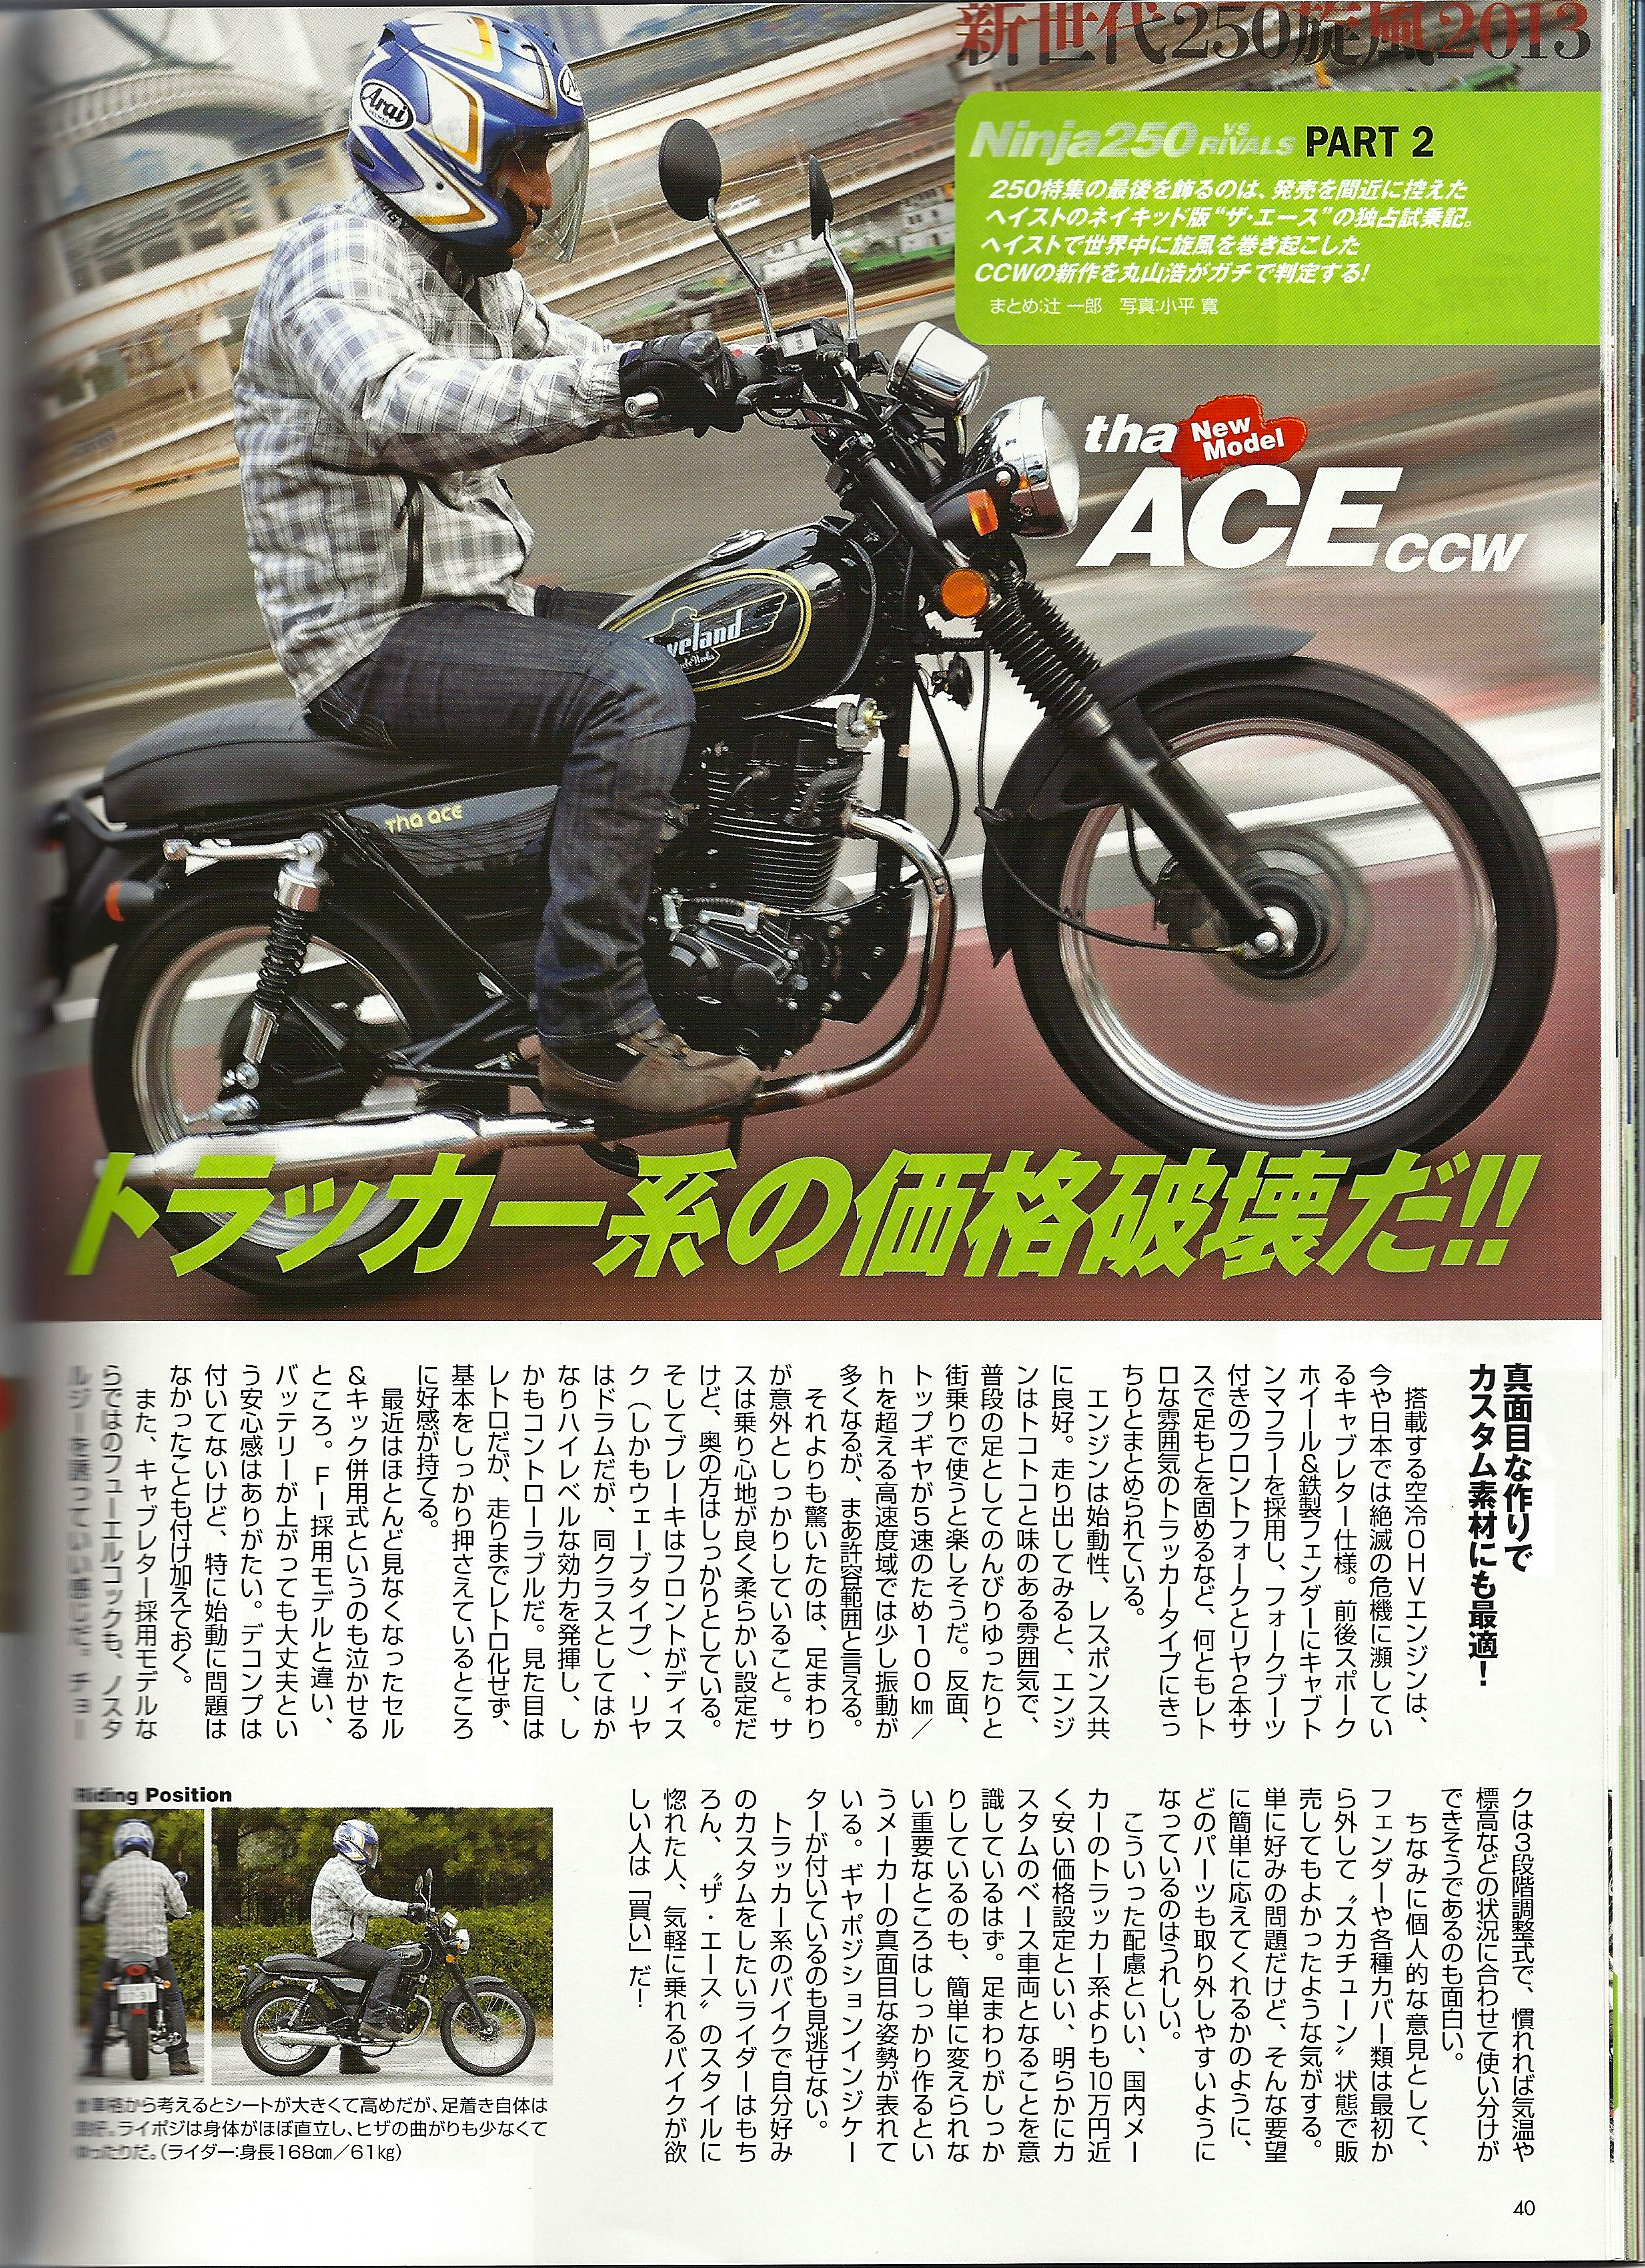 Young-Machine-Ace-001.jp3.jpg